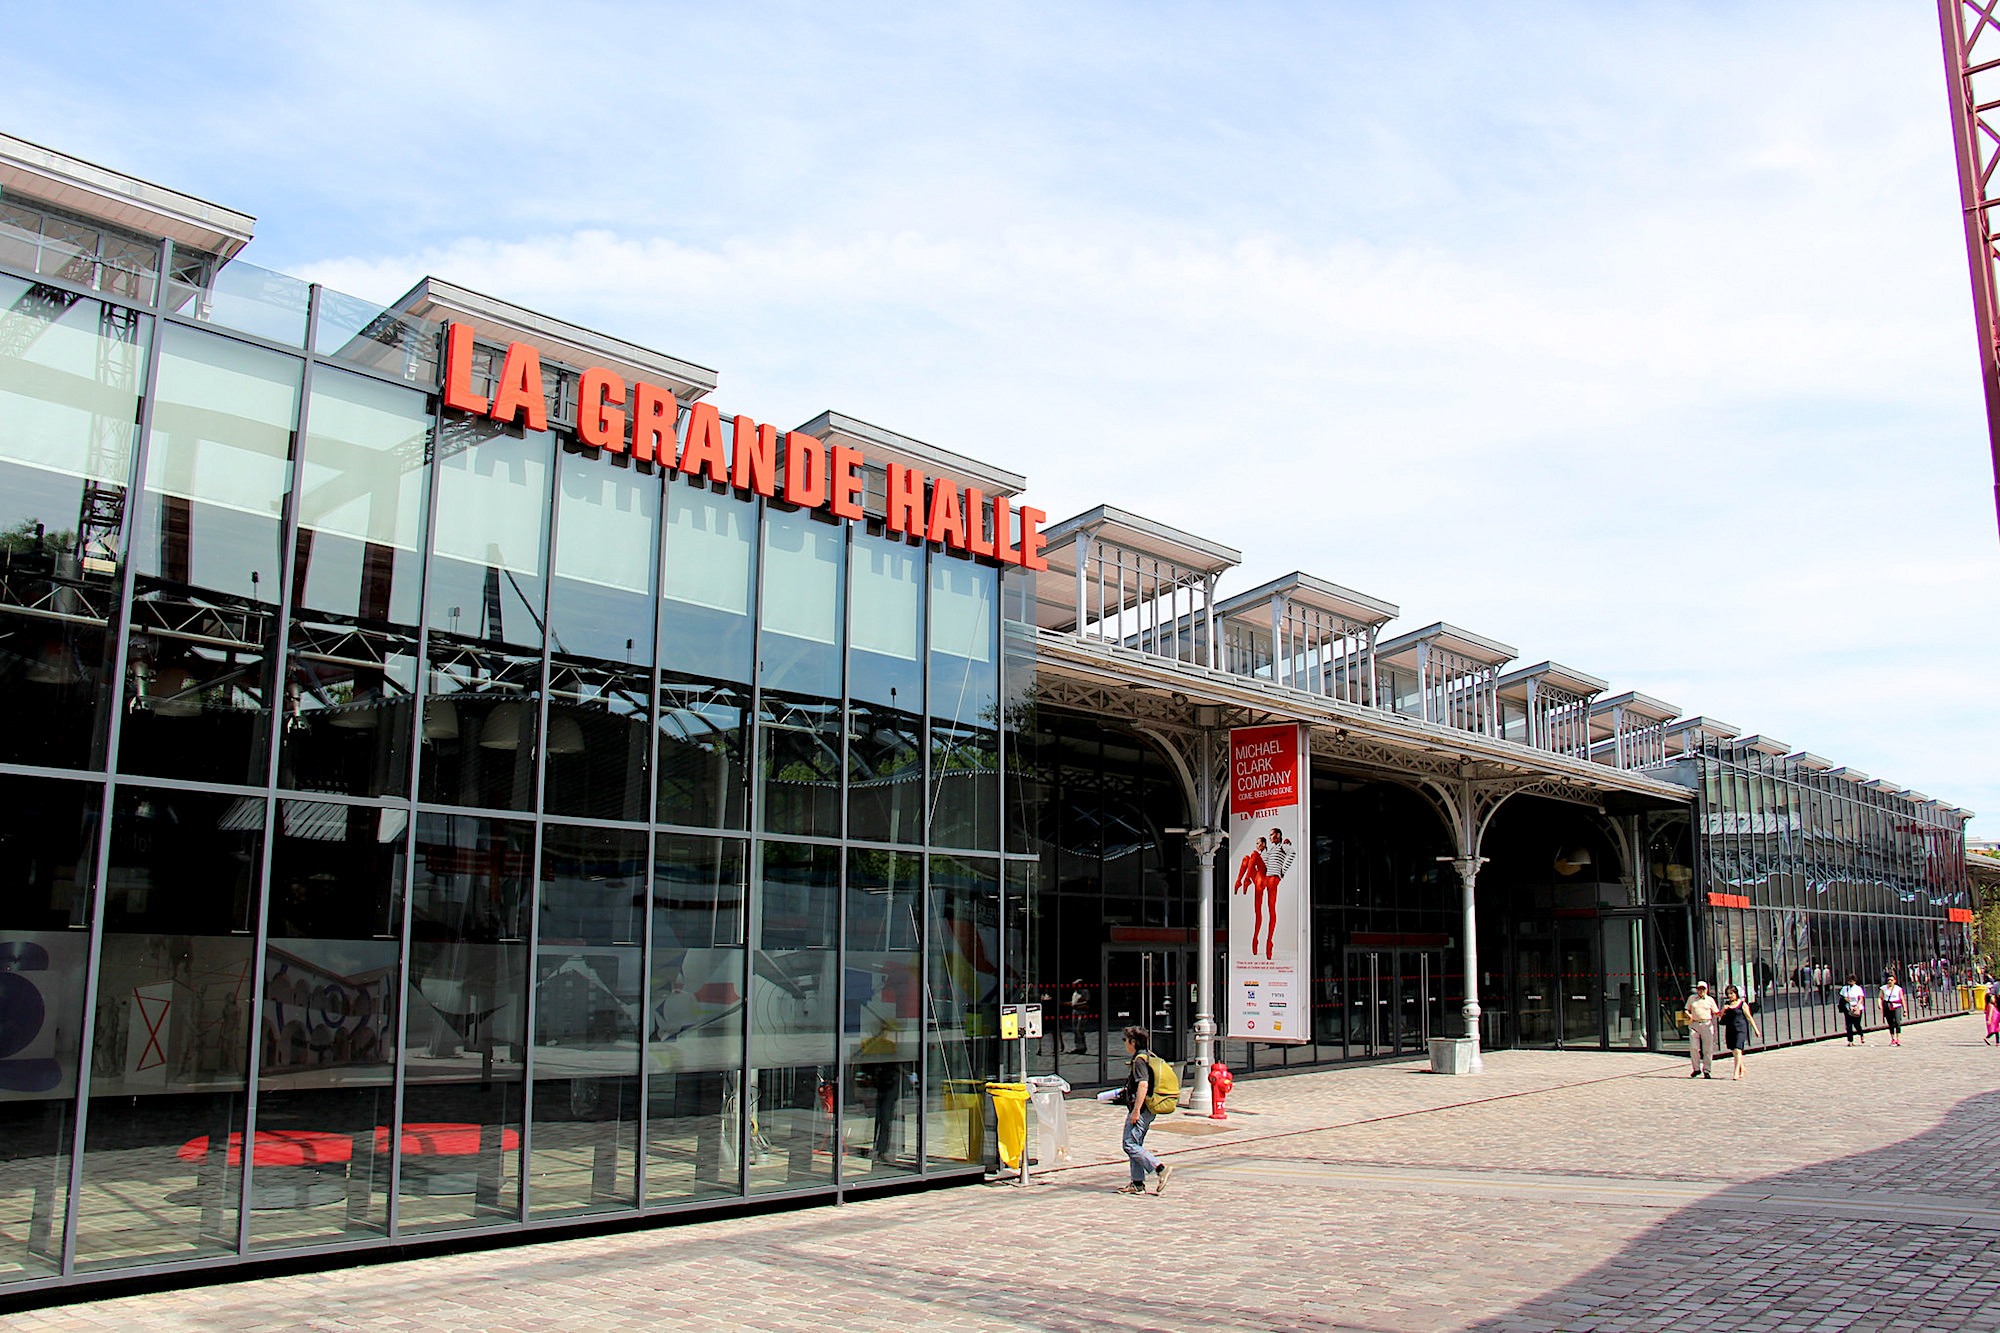 Concerts and exhibitions in Paris in May often take place at La Villette Grande Halle in the north-east of the city.